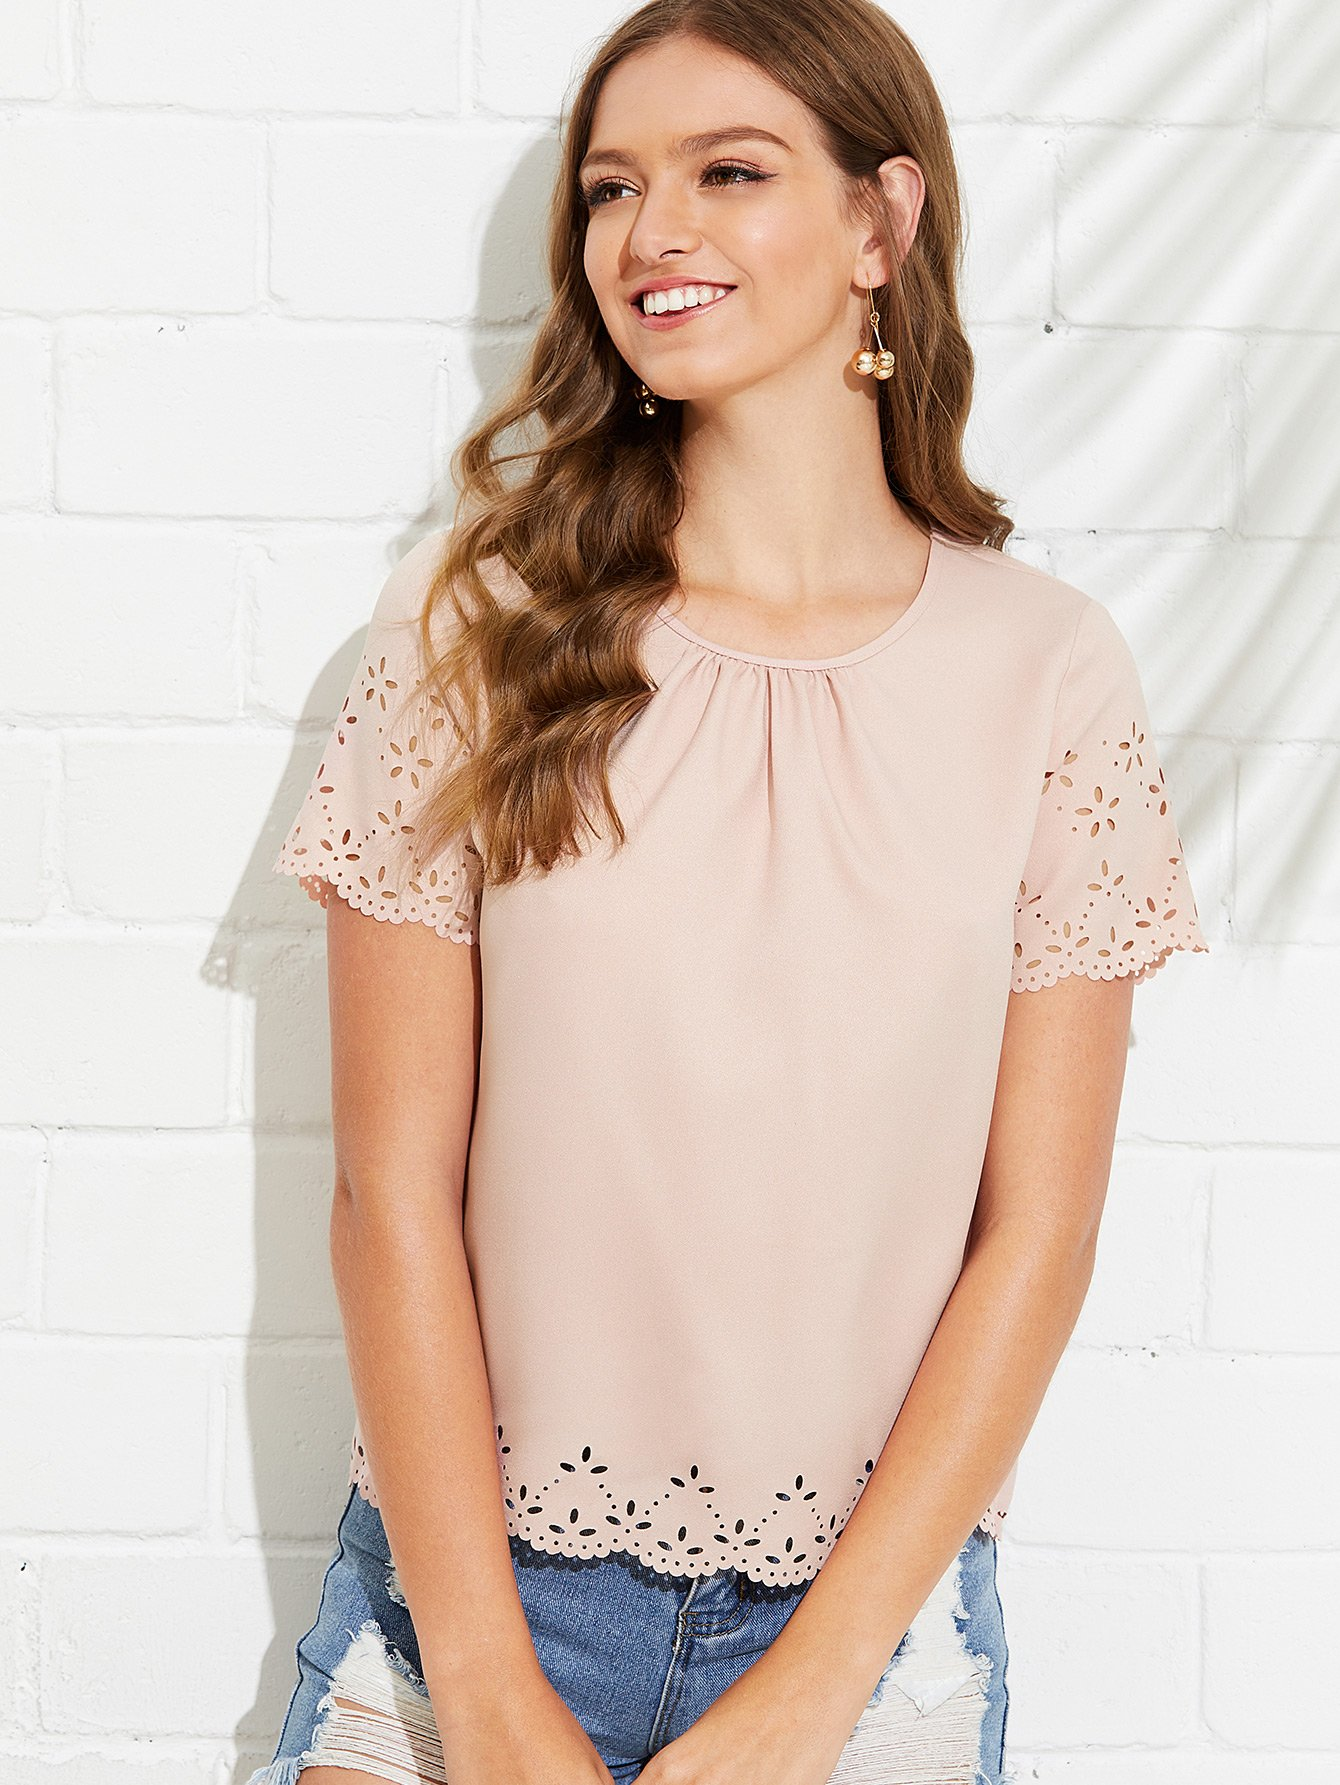 SHEINGathered Neck Scallop Laser Cut Top